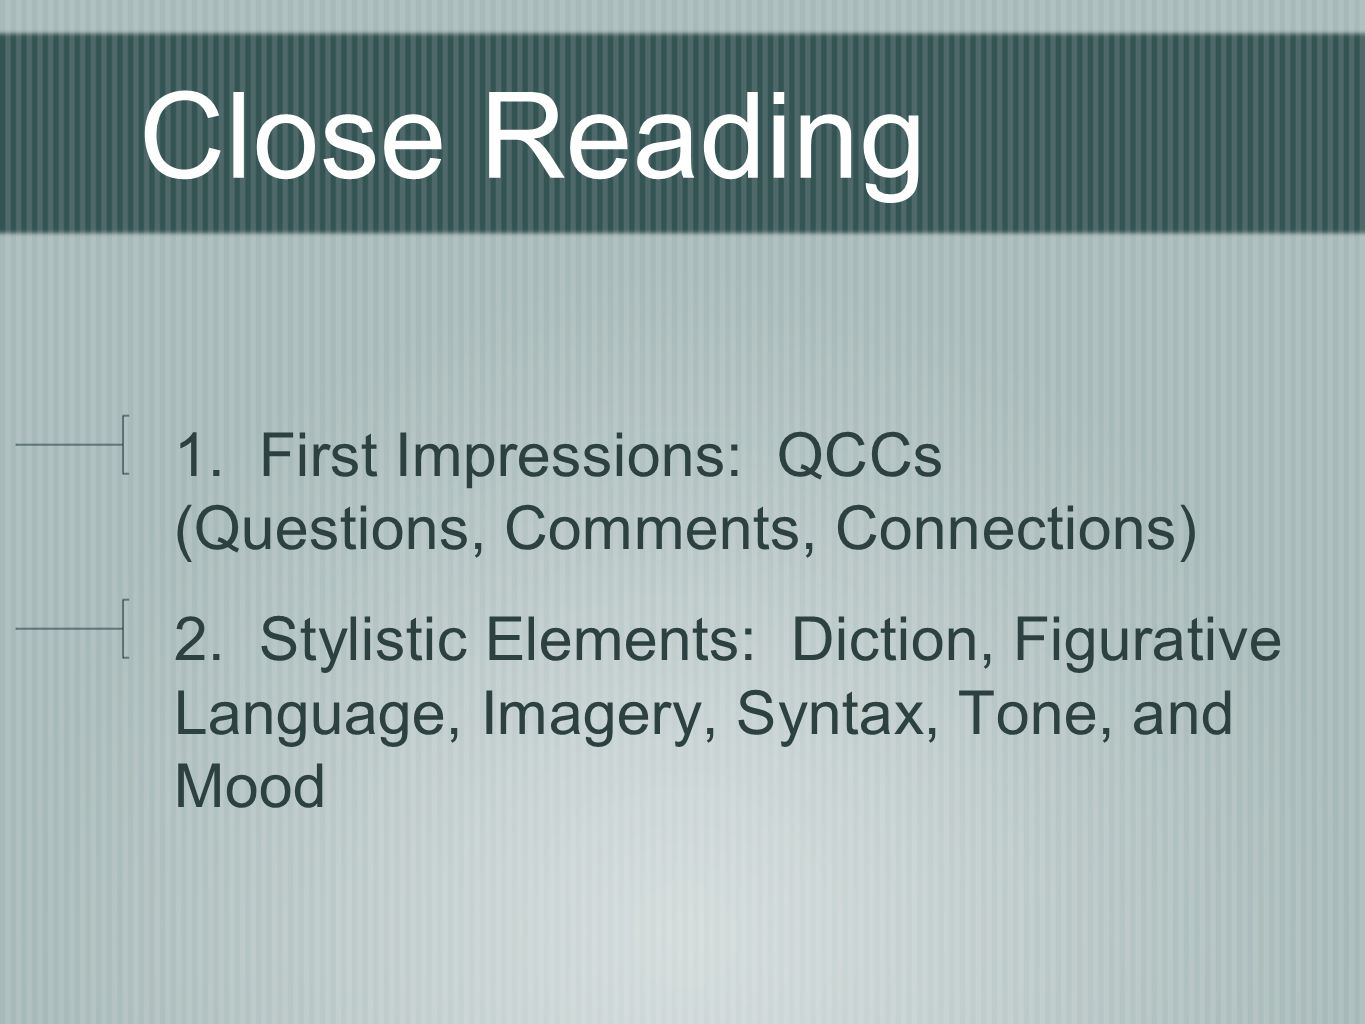 Close Reading 1. First Impressions: QCCs (Questions, Comments, Connections)